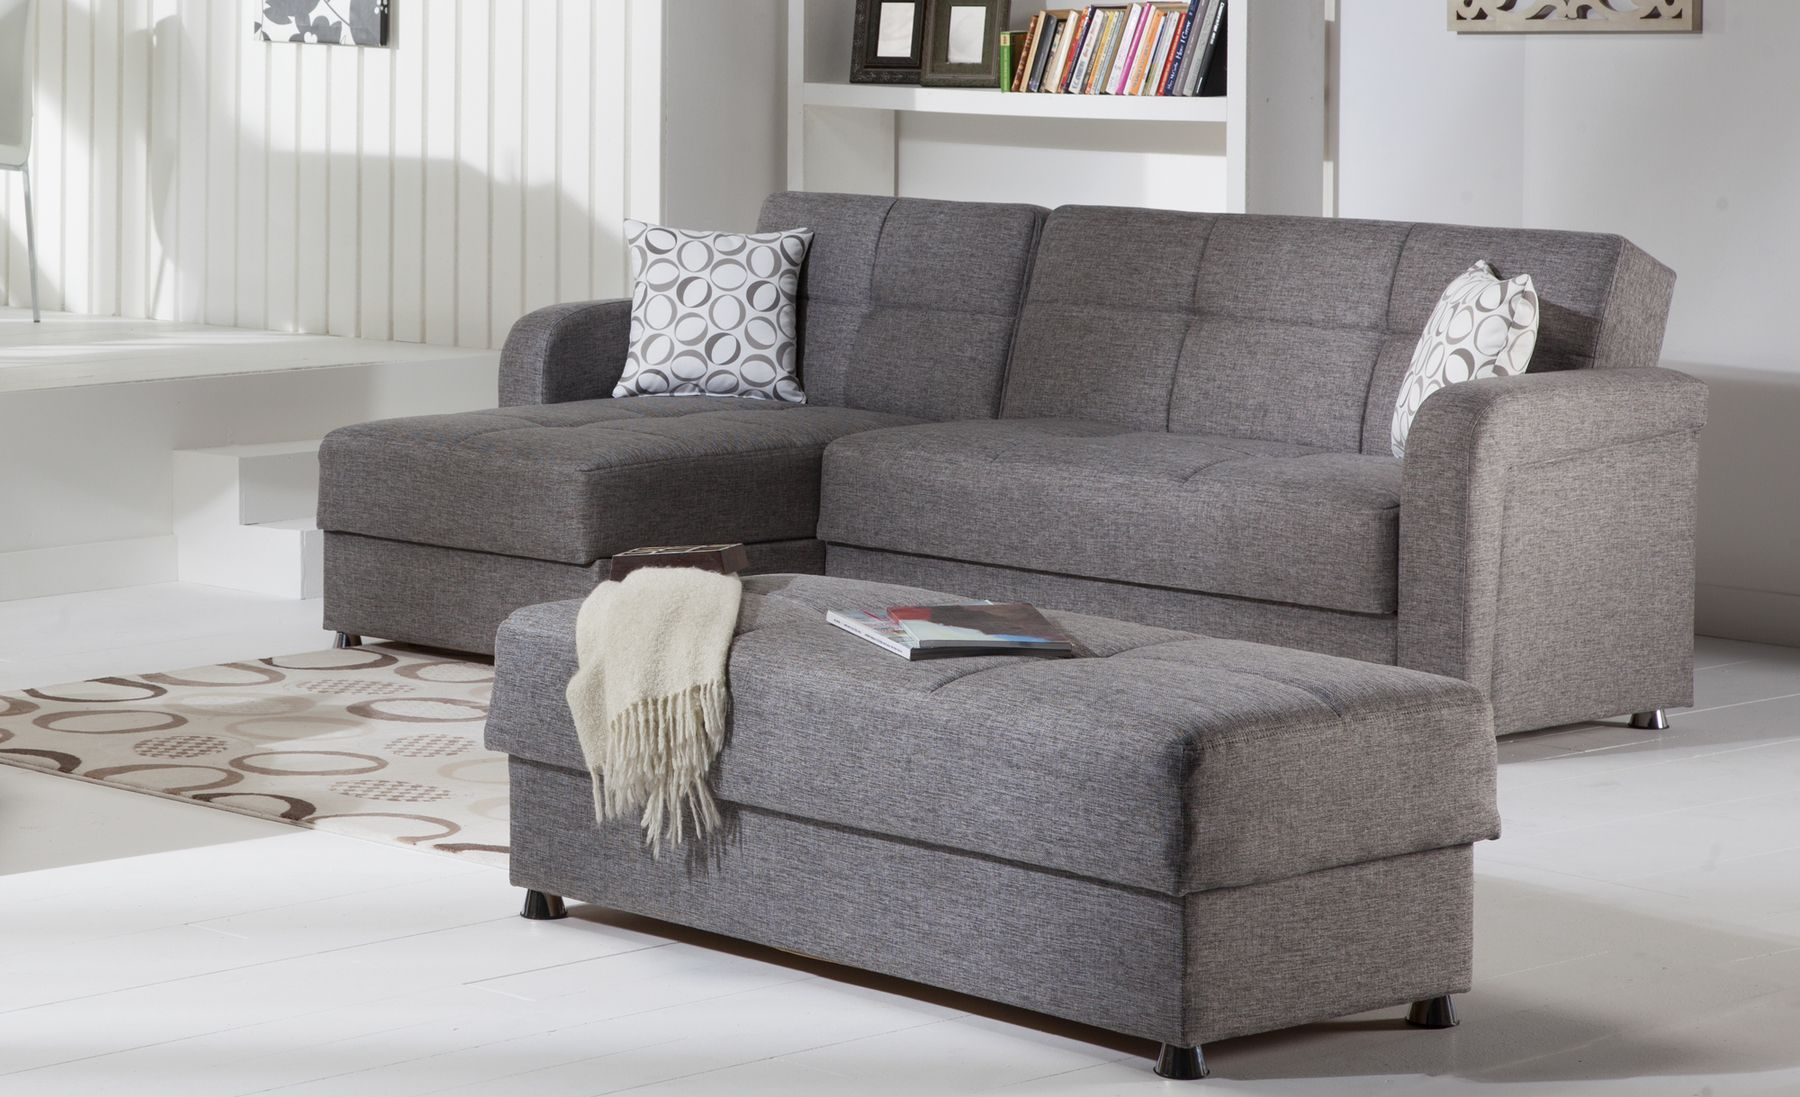 Vision Gray Sectional Sofa | Apartment thoughts... | Sectional ...